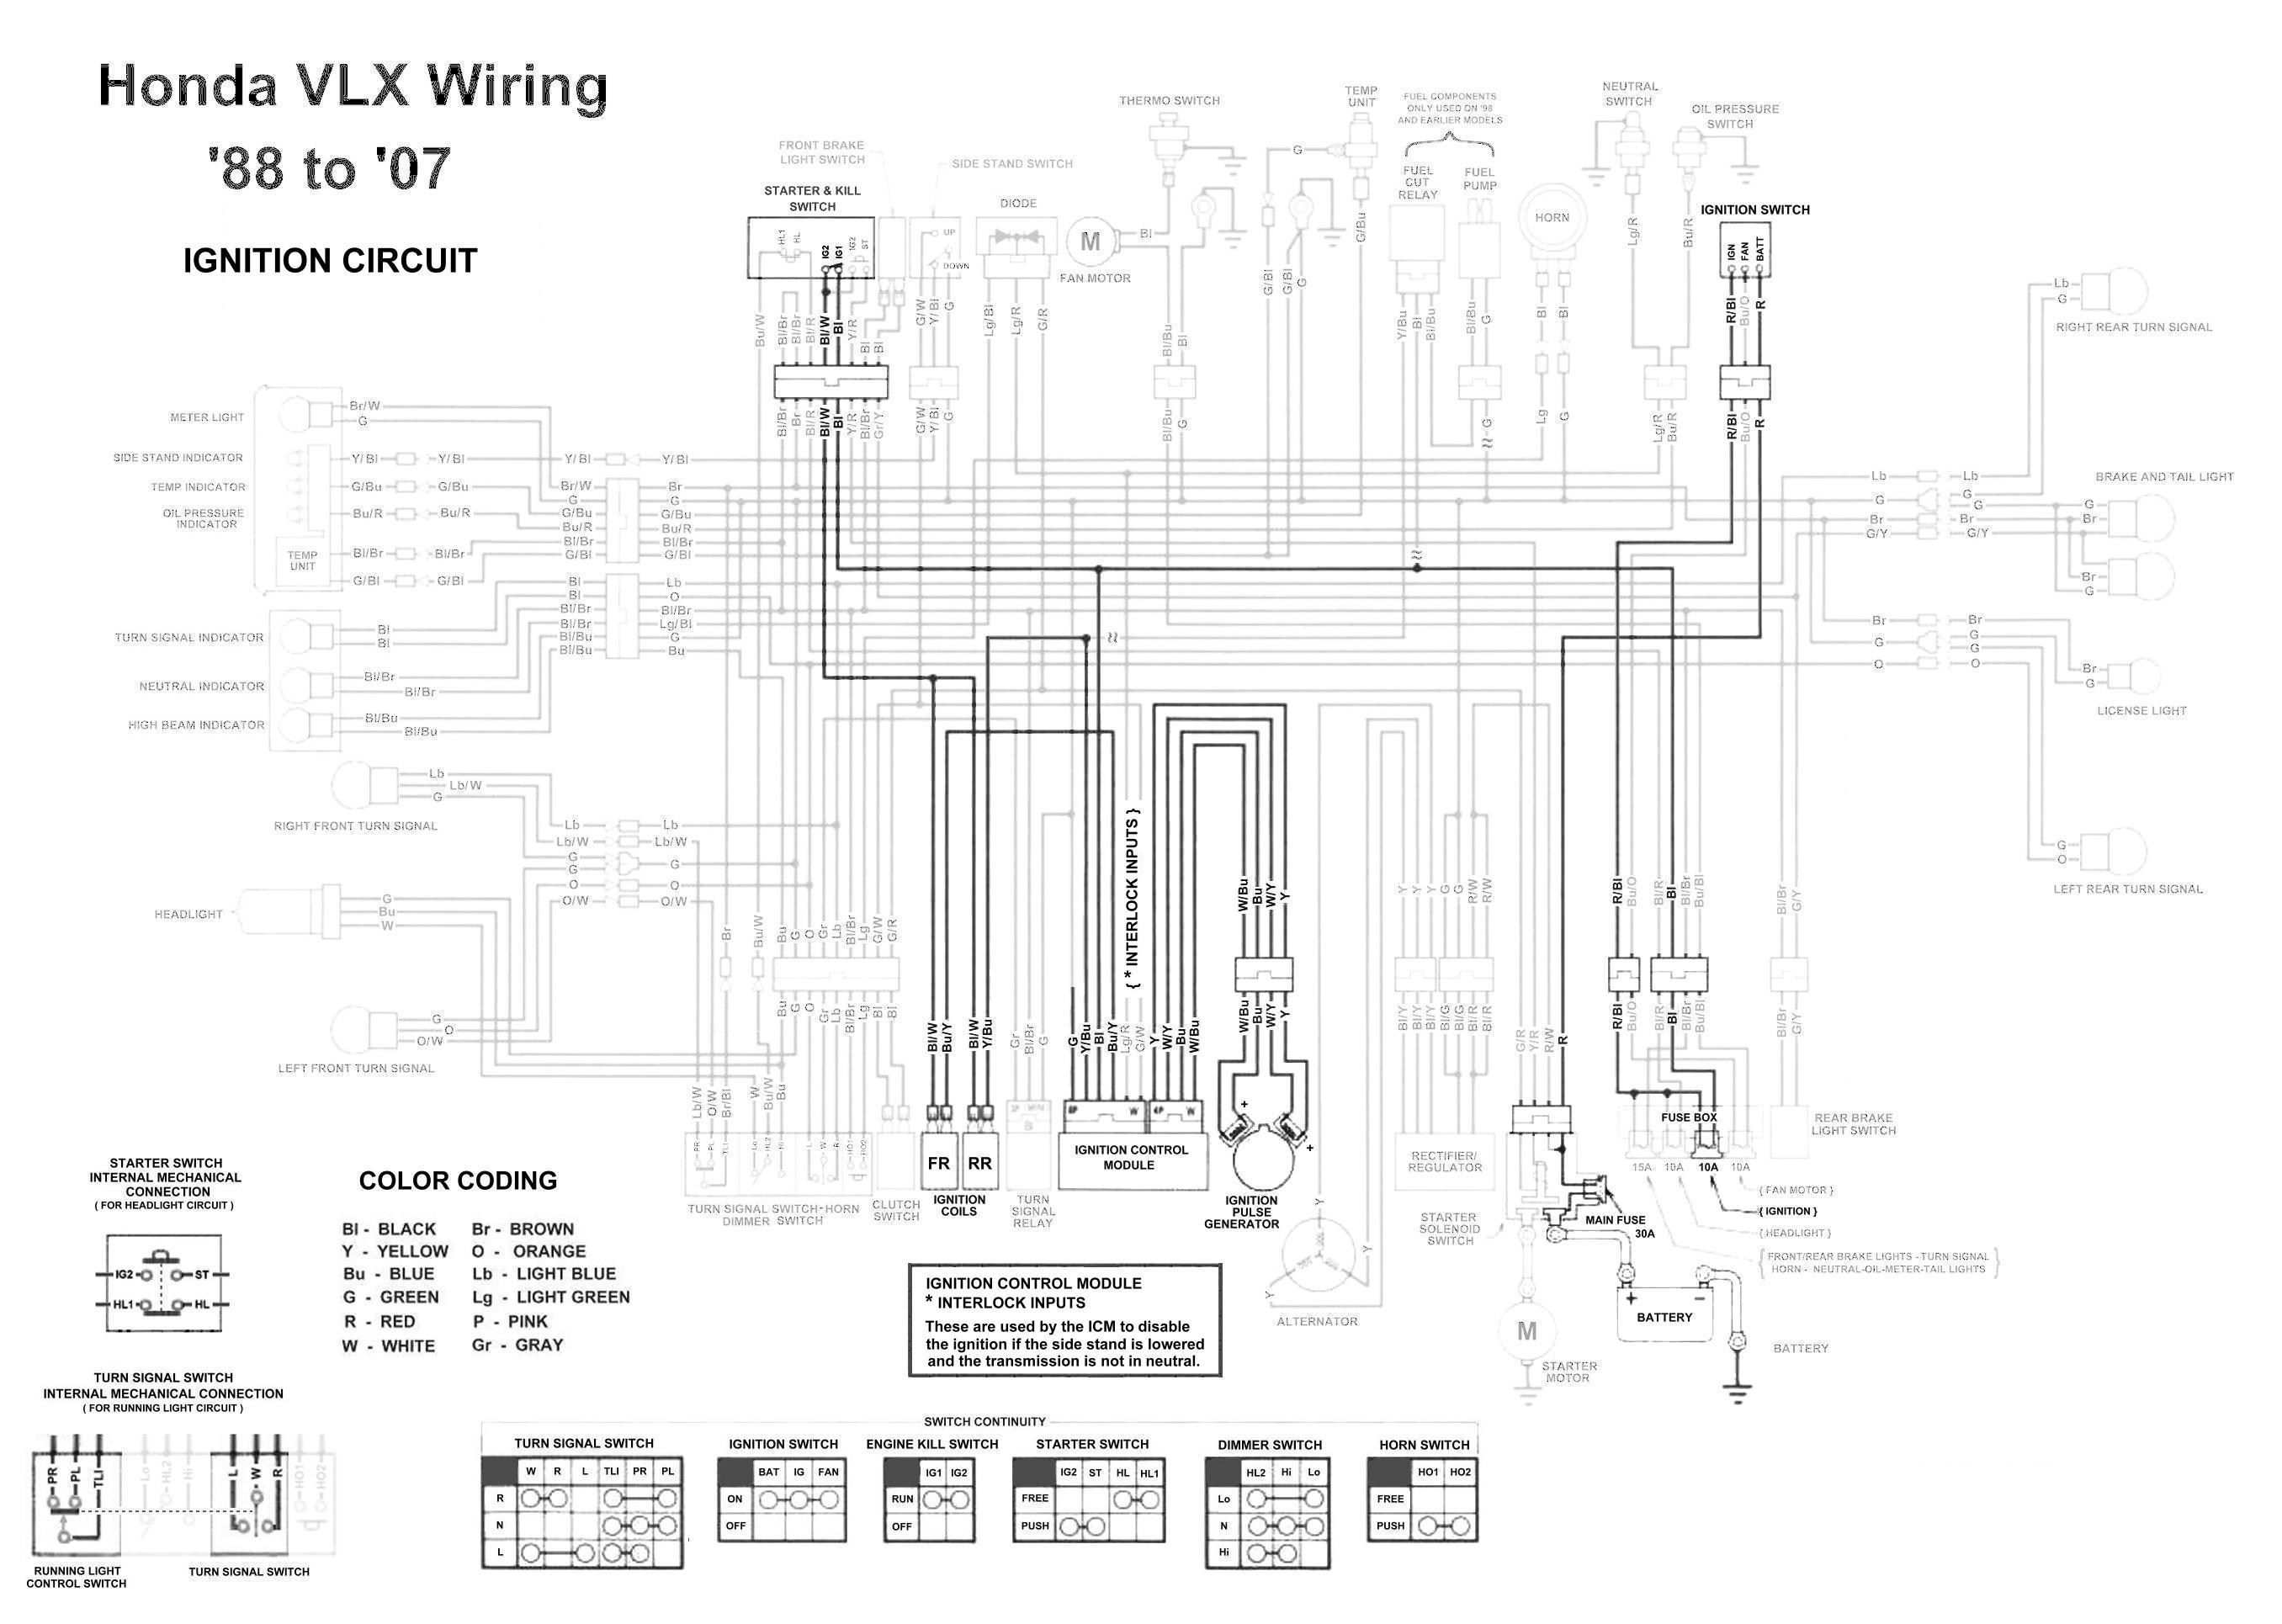 Honda Shadow Vt600 Vlx 600 Ignition Circuit Diagram